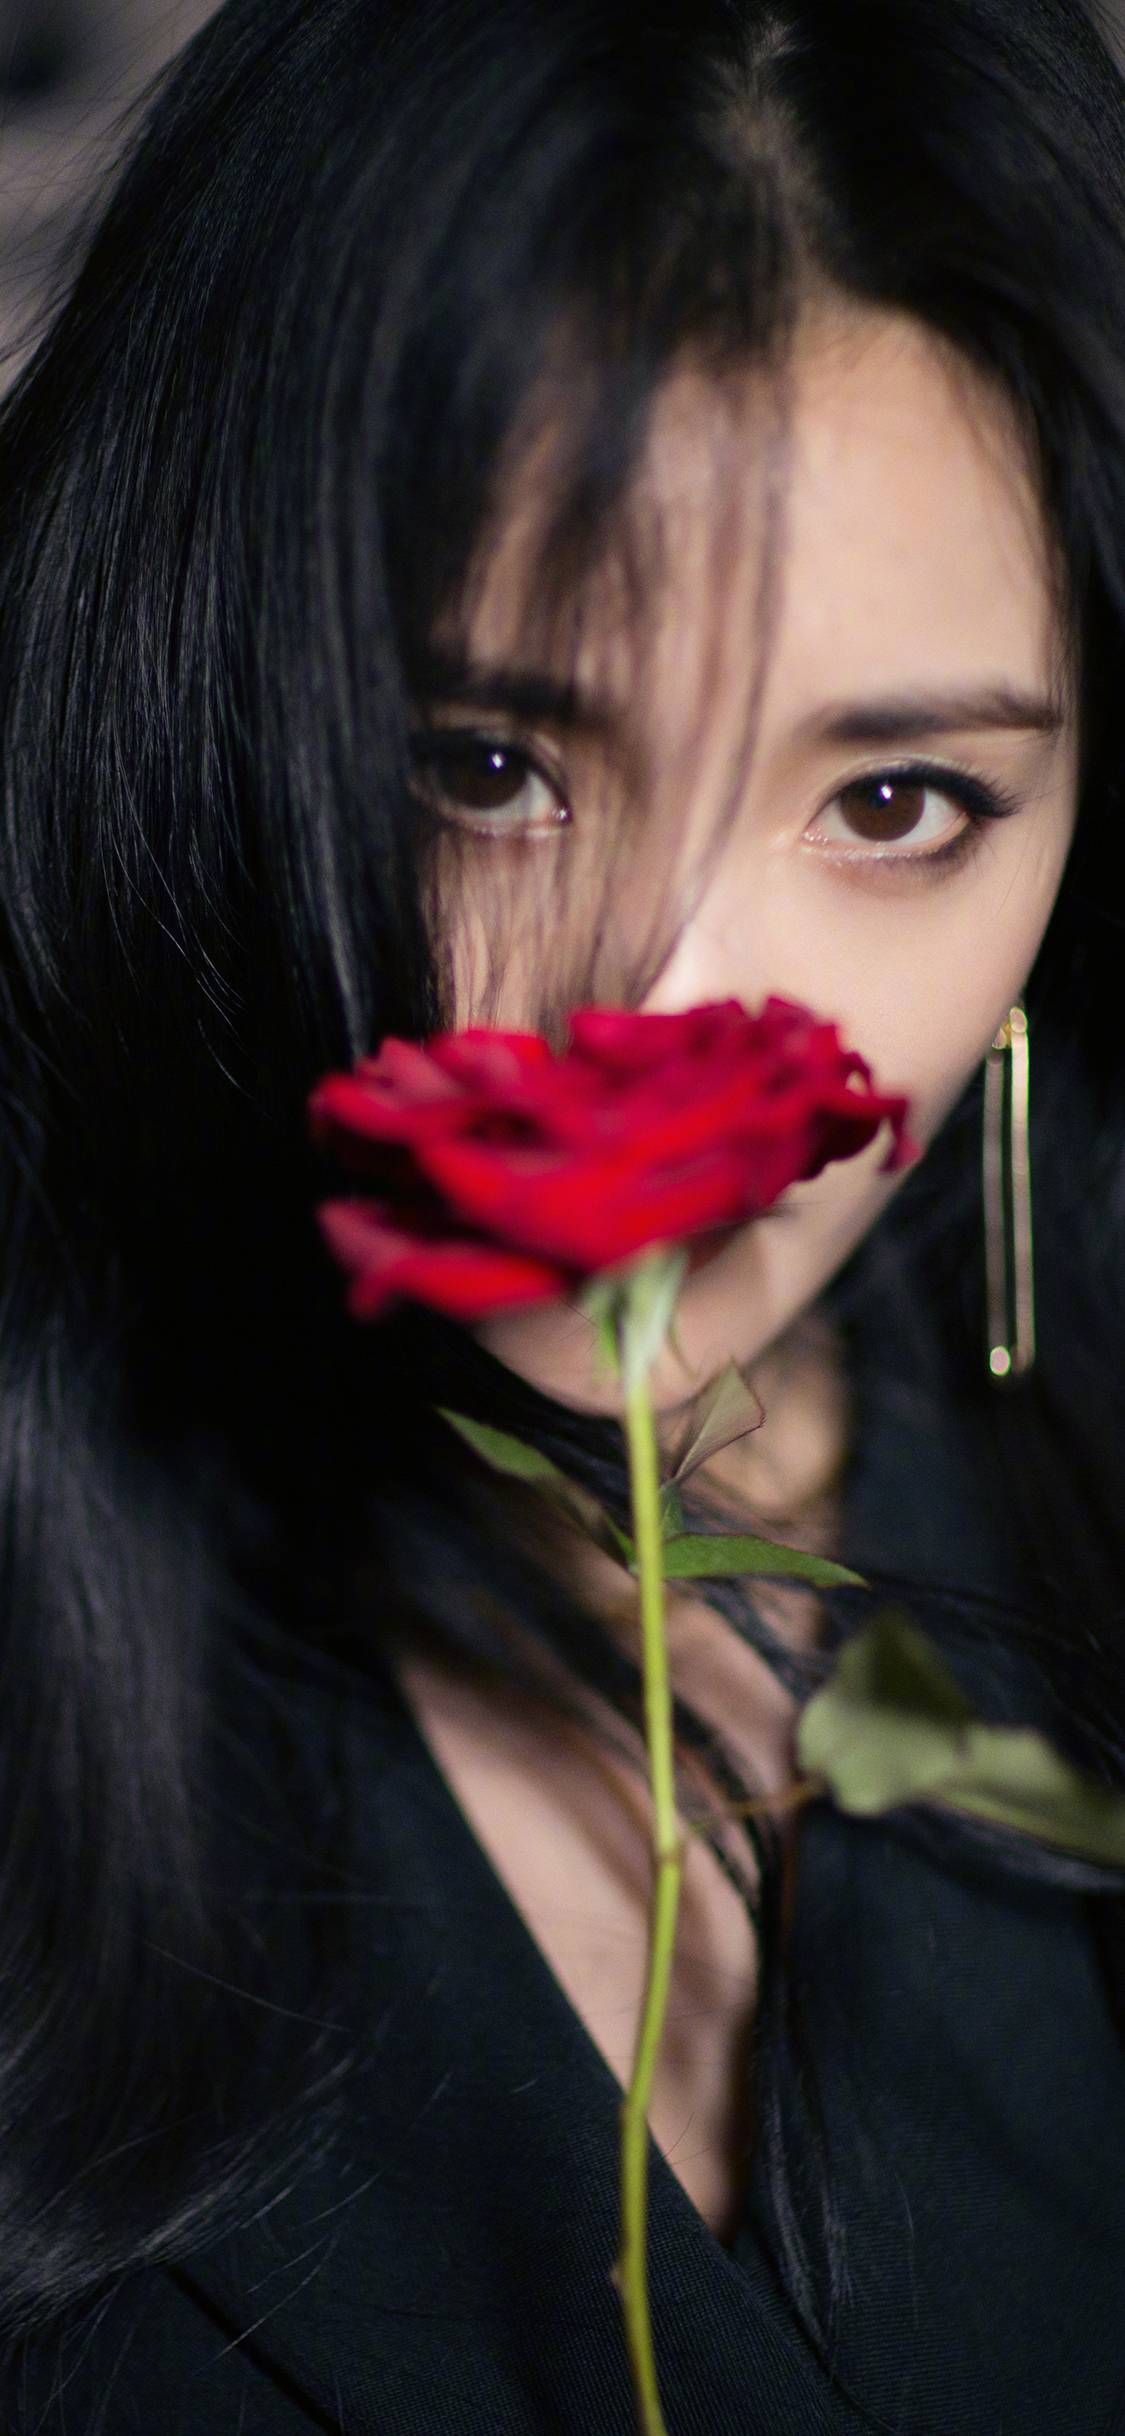 Actor of rose of Yang Mi's actor Wallpapers for iPhone X